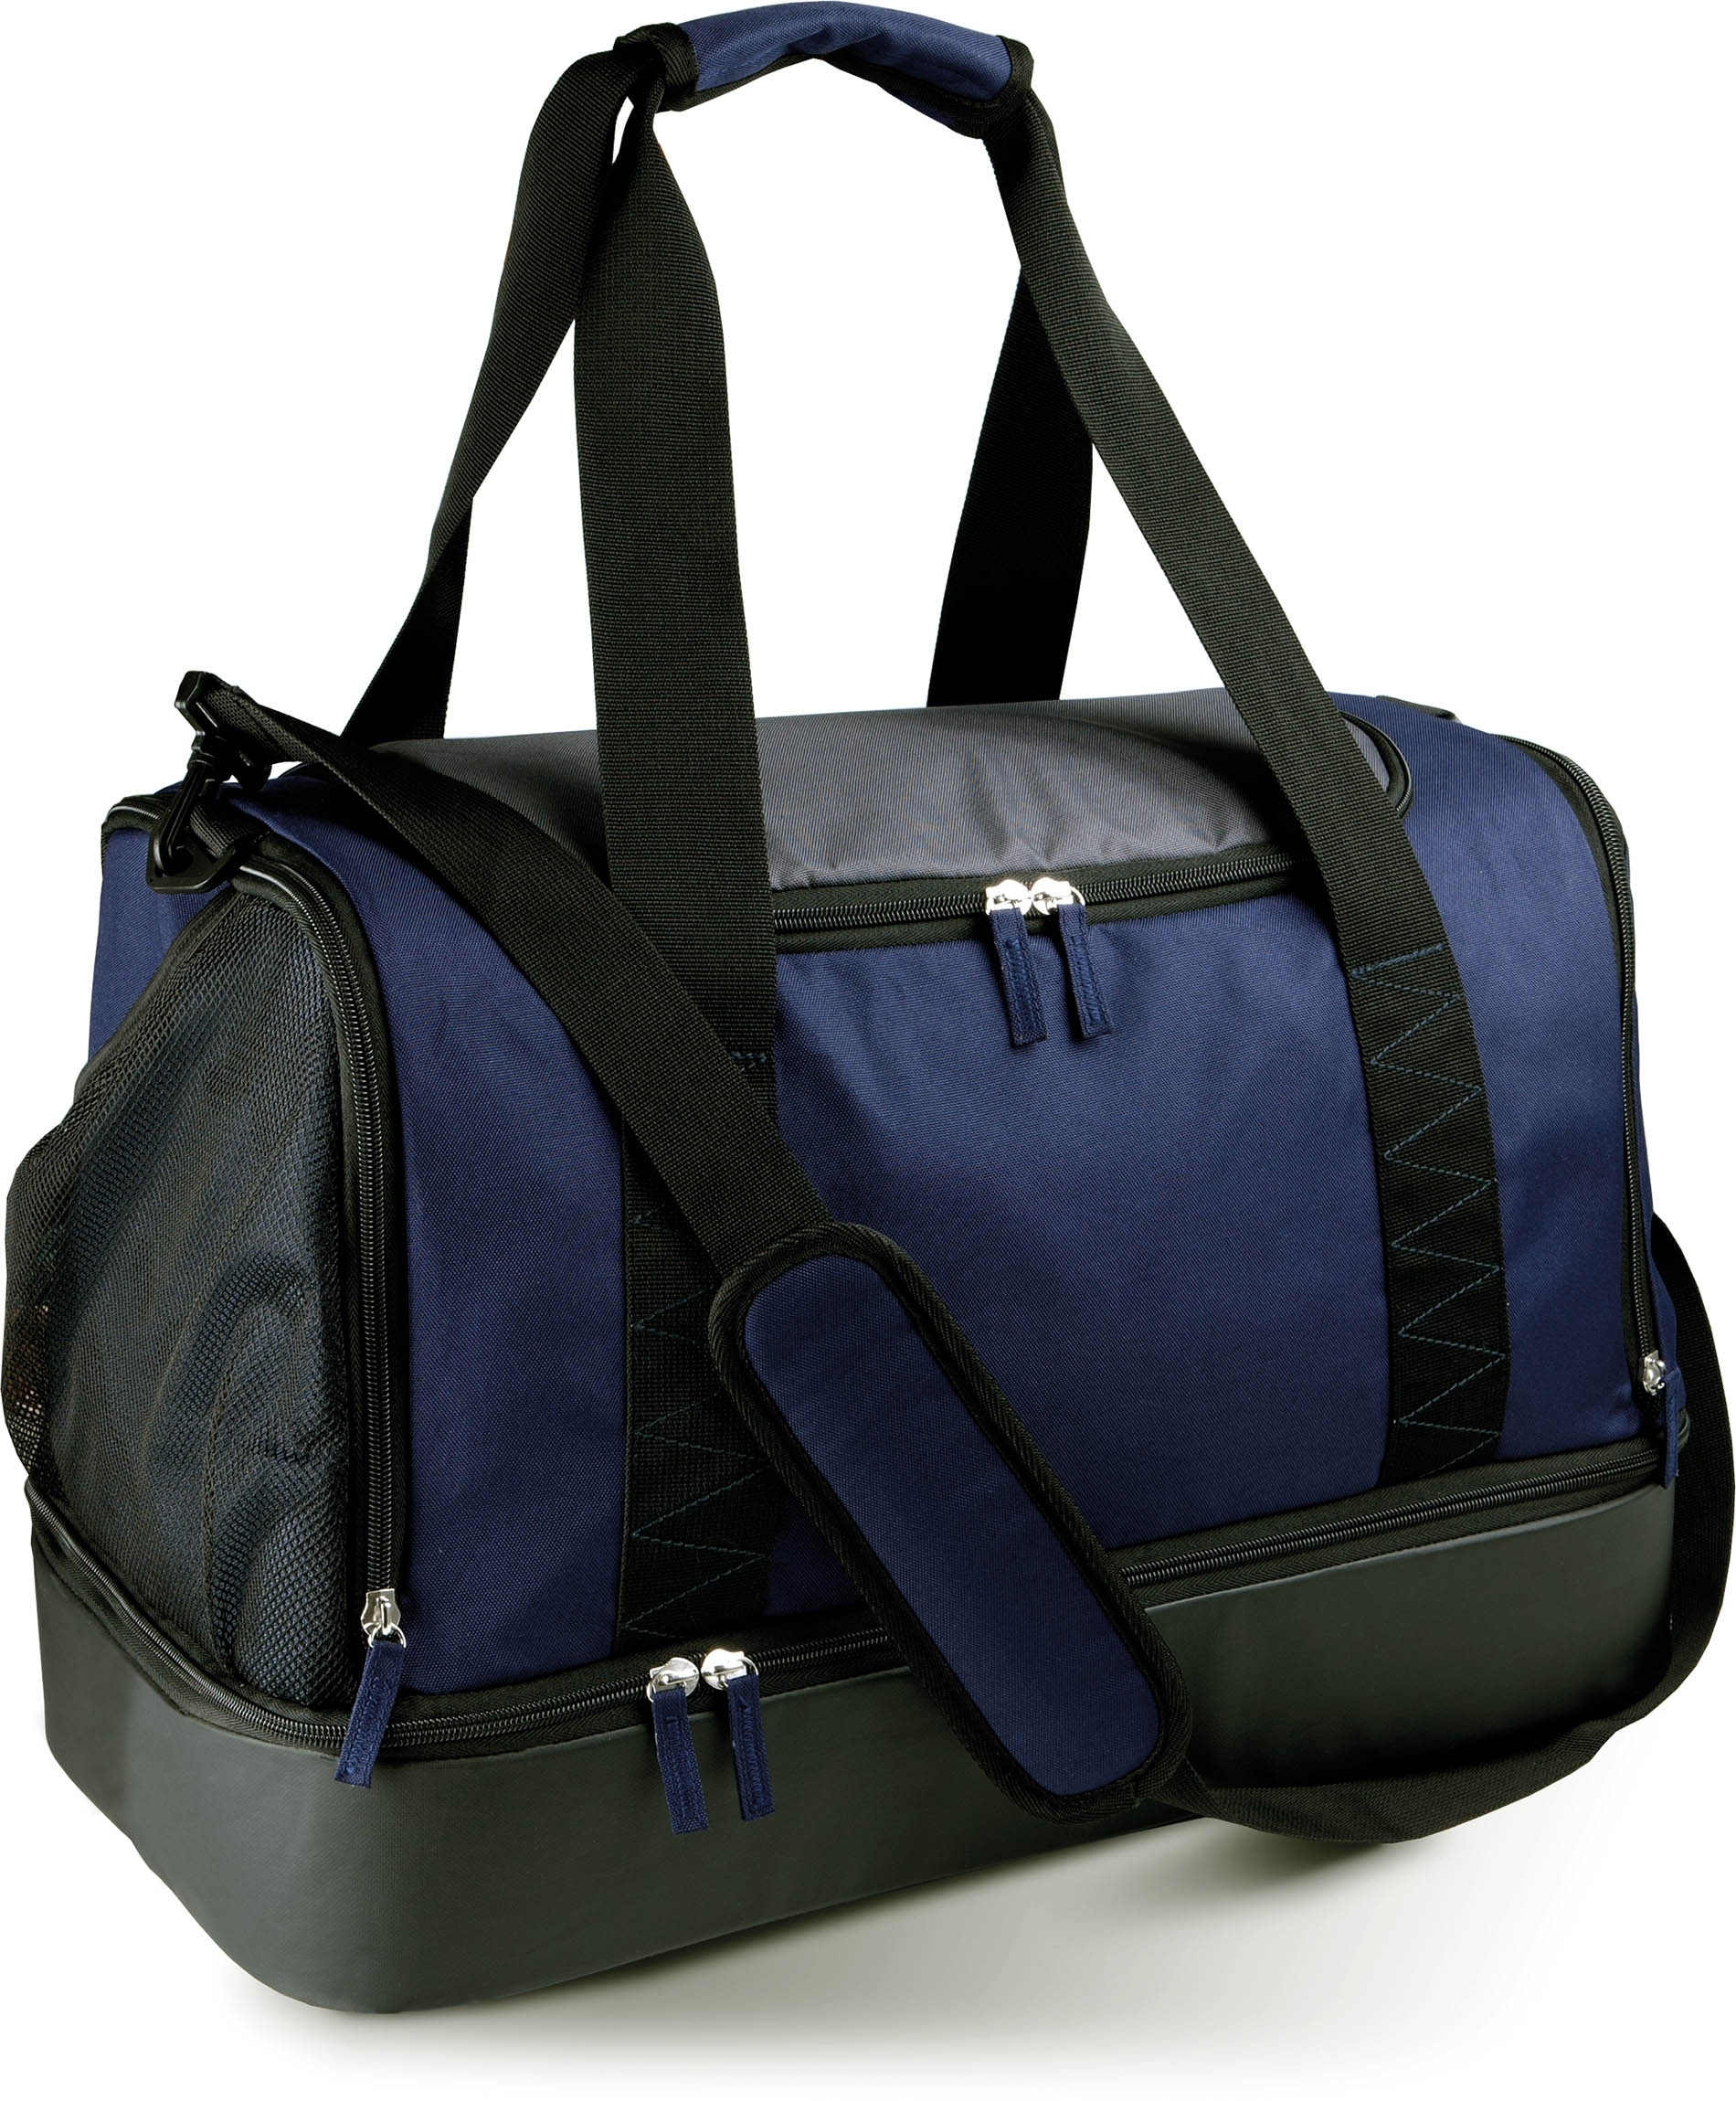 SAC DE SPORT COLLECTIF Navy / Dark Grey / Black Bleu